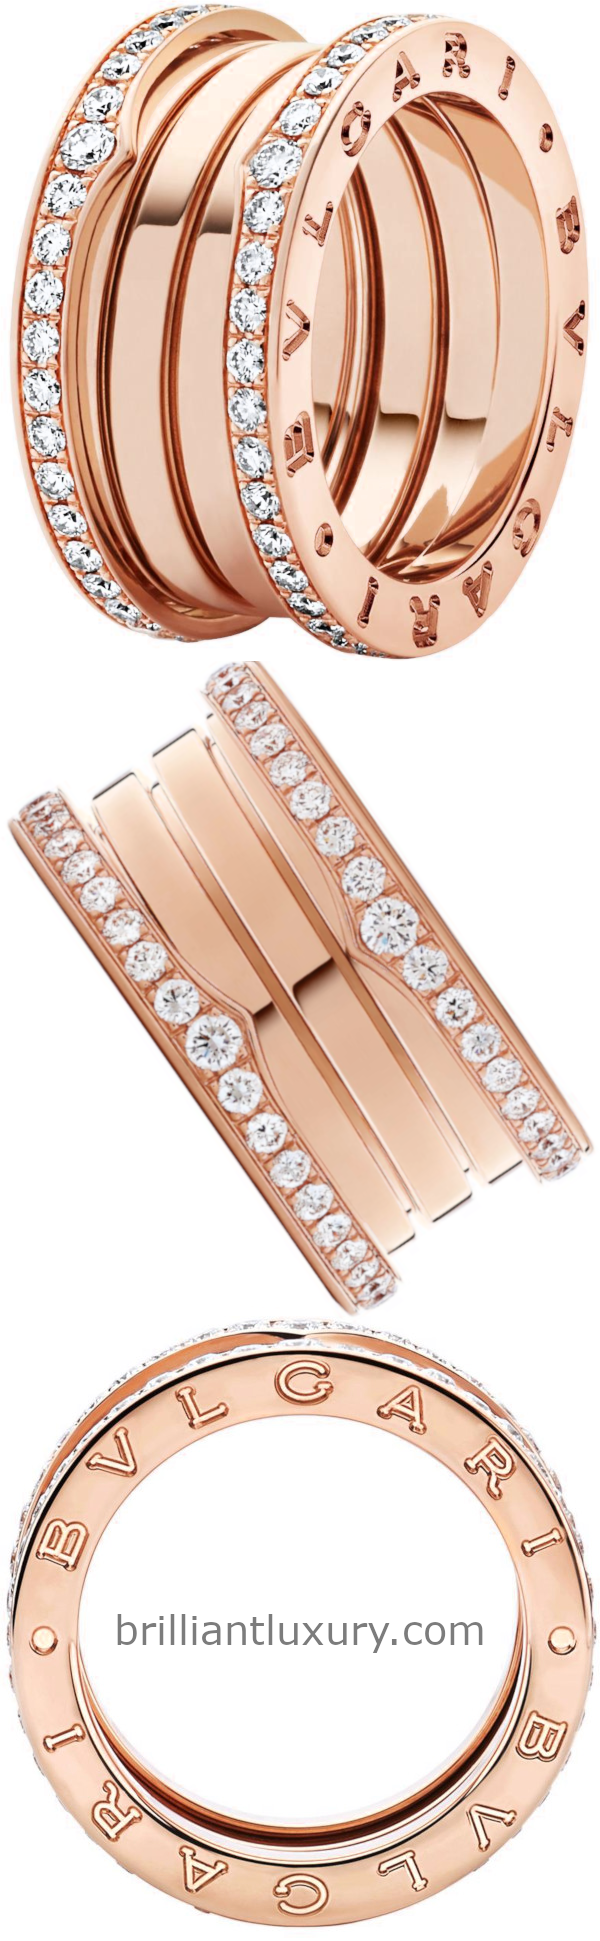 Bvlgari B.Zero1 four-band ring in 18kt rose gold set with pavé diamonds on the edges